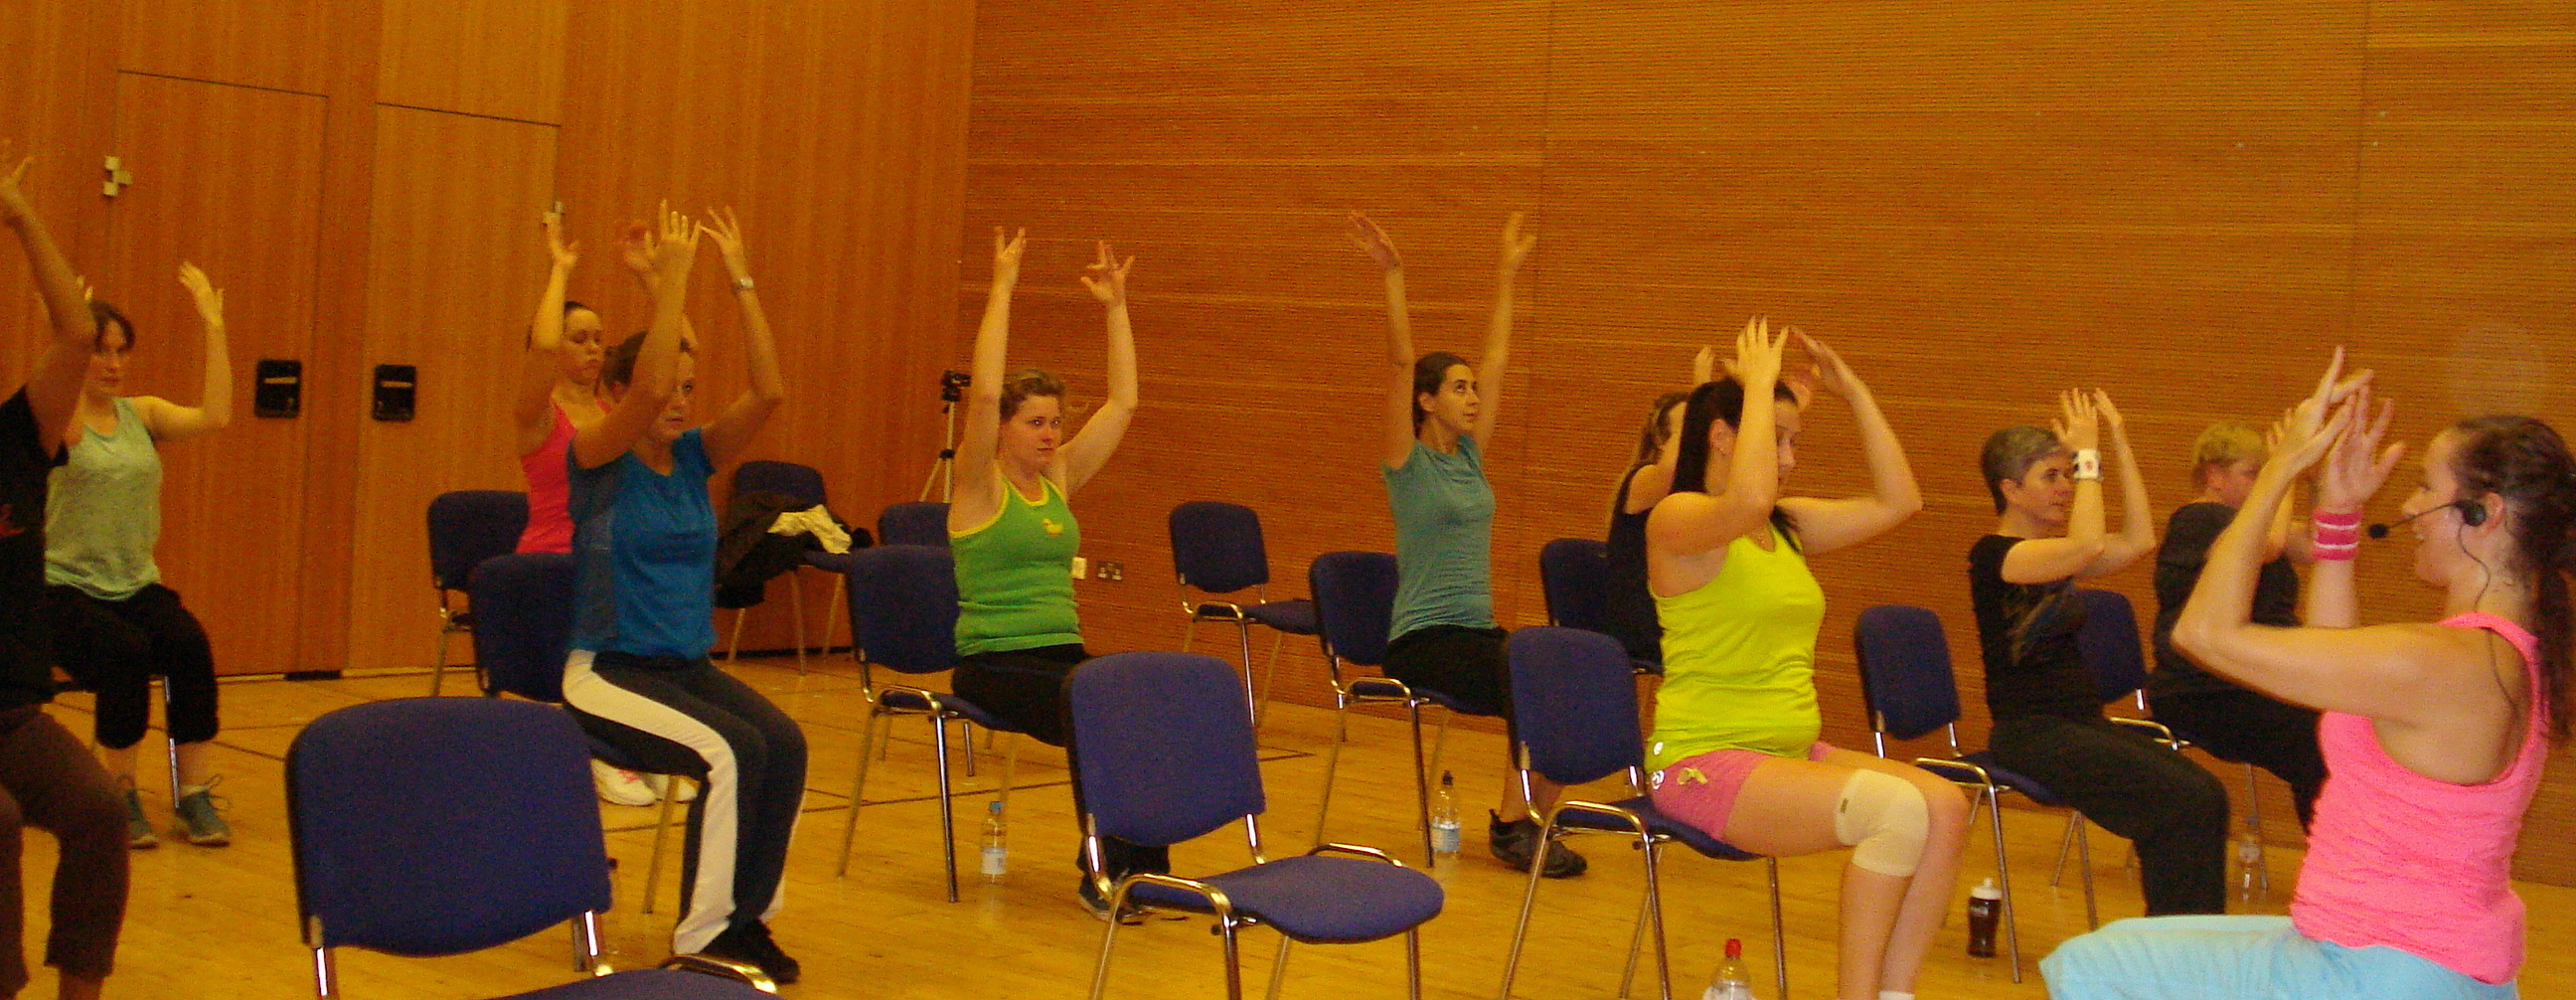 Grab a chair zoe evans fitness solutions for Chair zumba